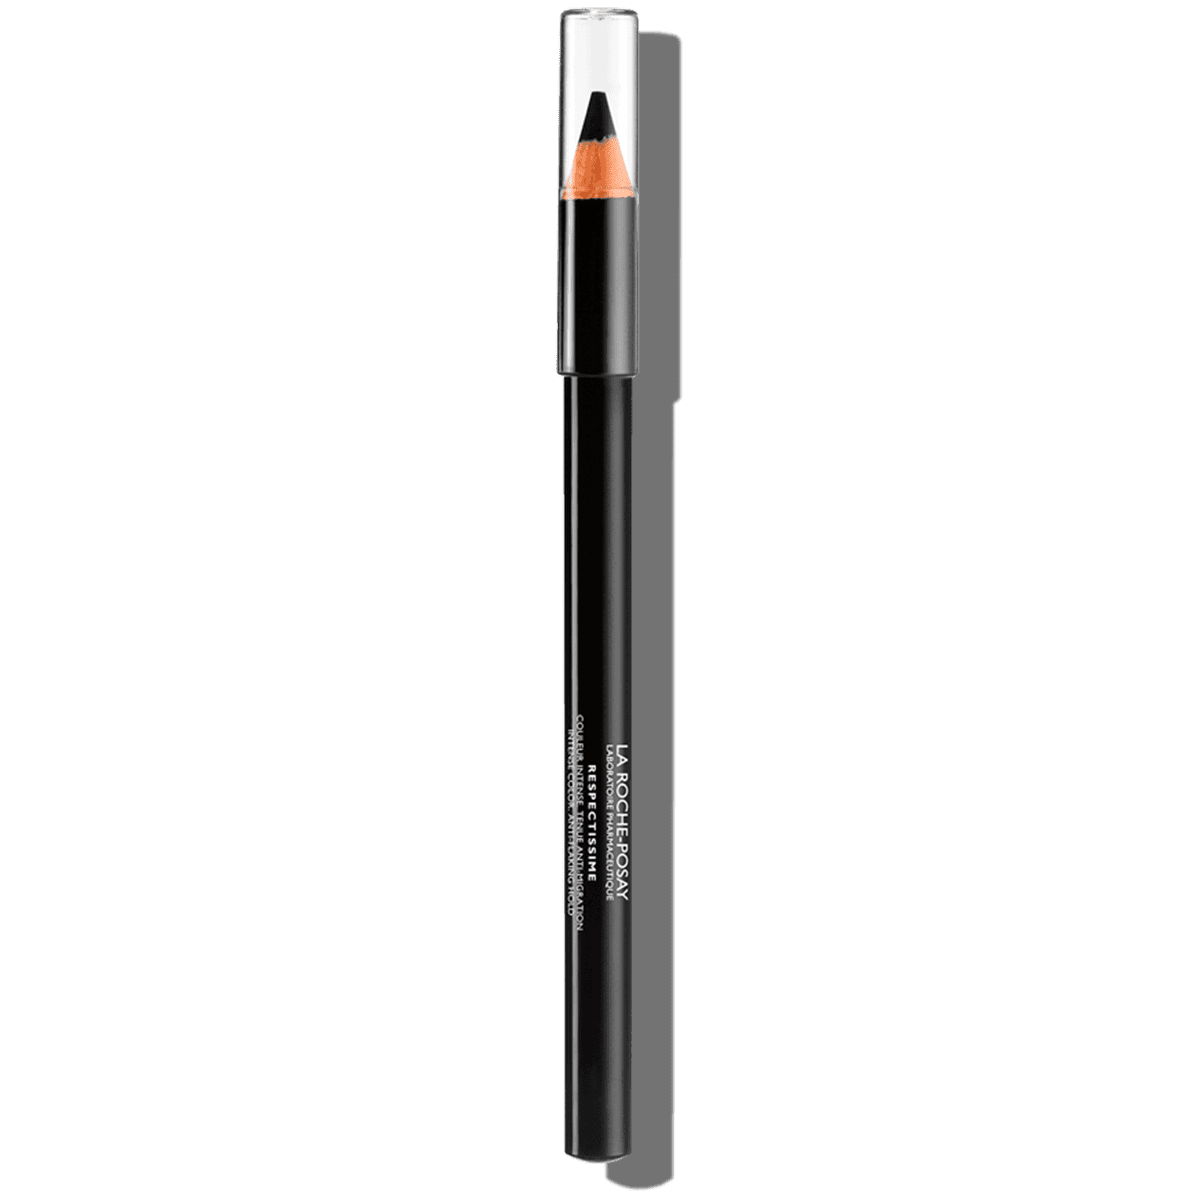 La Roche Posay Sensitive Toleriane Make up EYE_PENCIL Black 3337872410